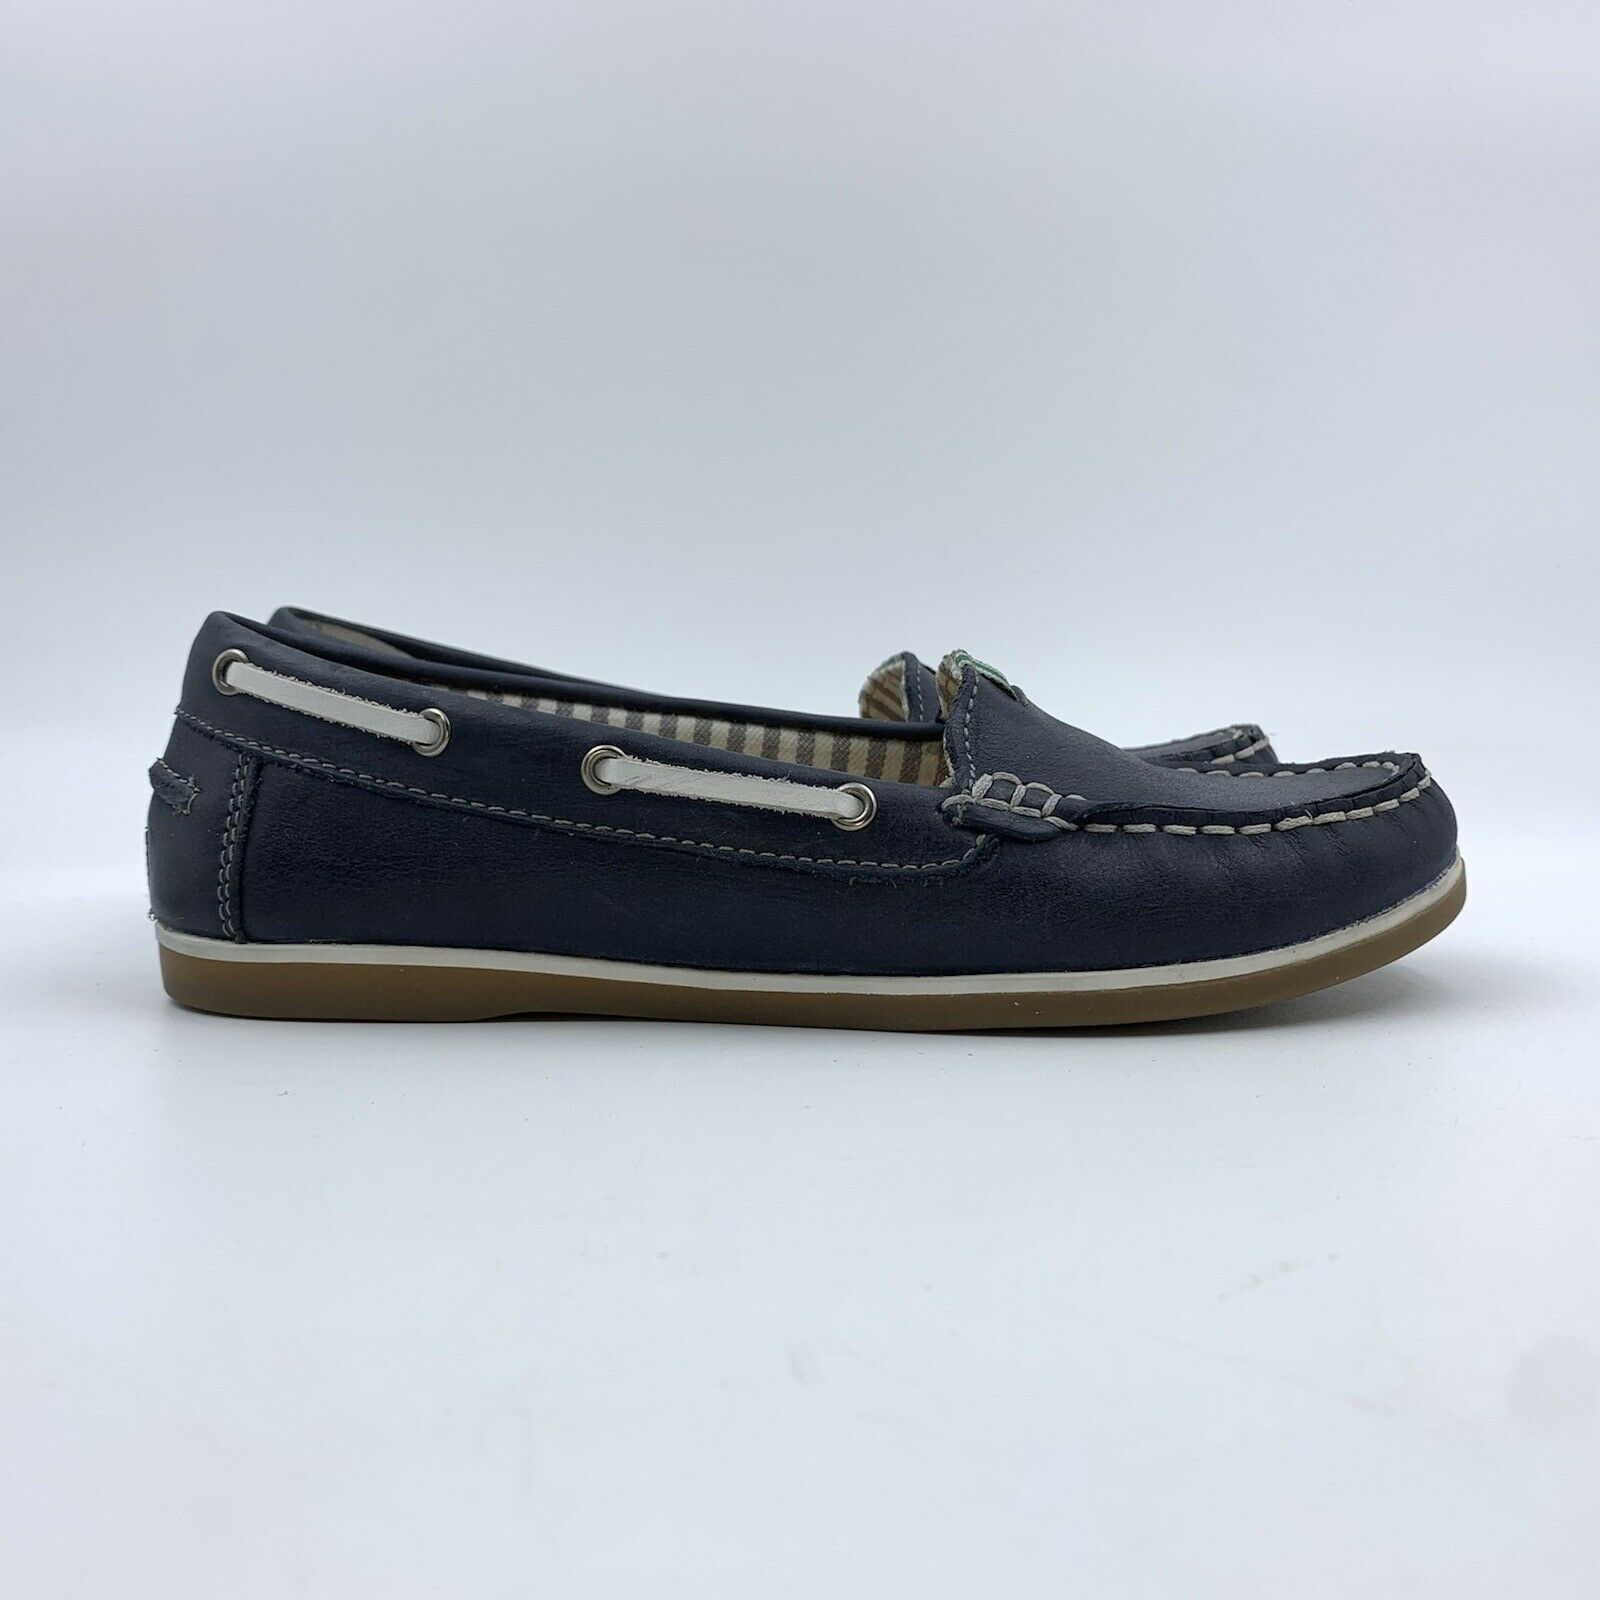 Naturalizer Womens Shoes SIZE 4 M Blue Leather Loafers Flats Boat Slip Ons